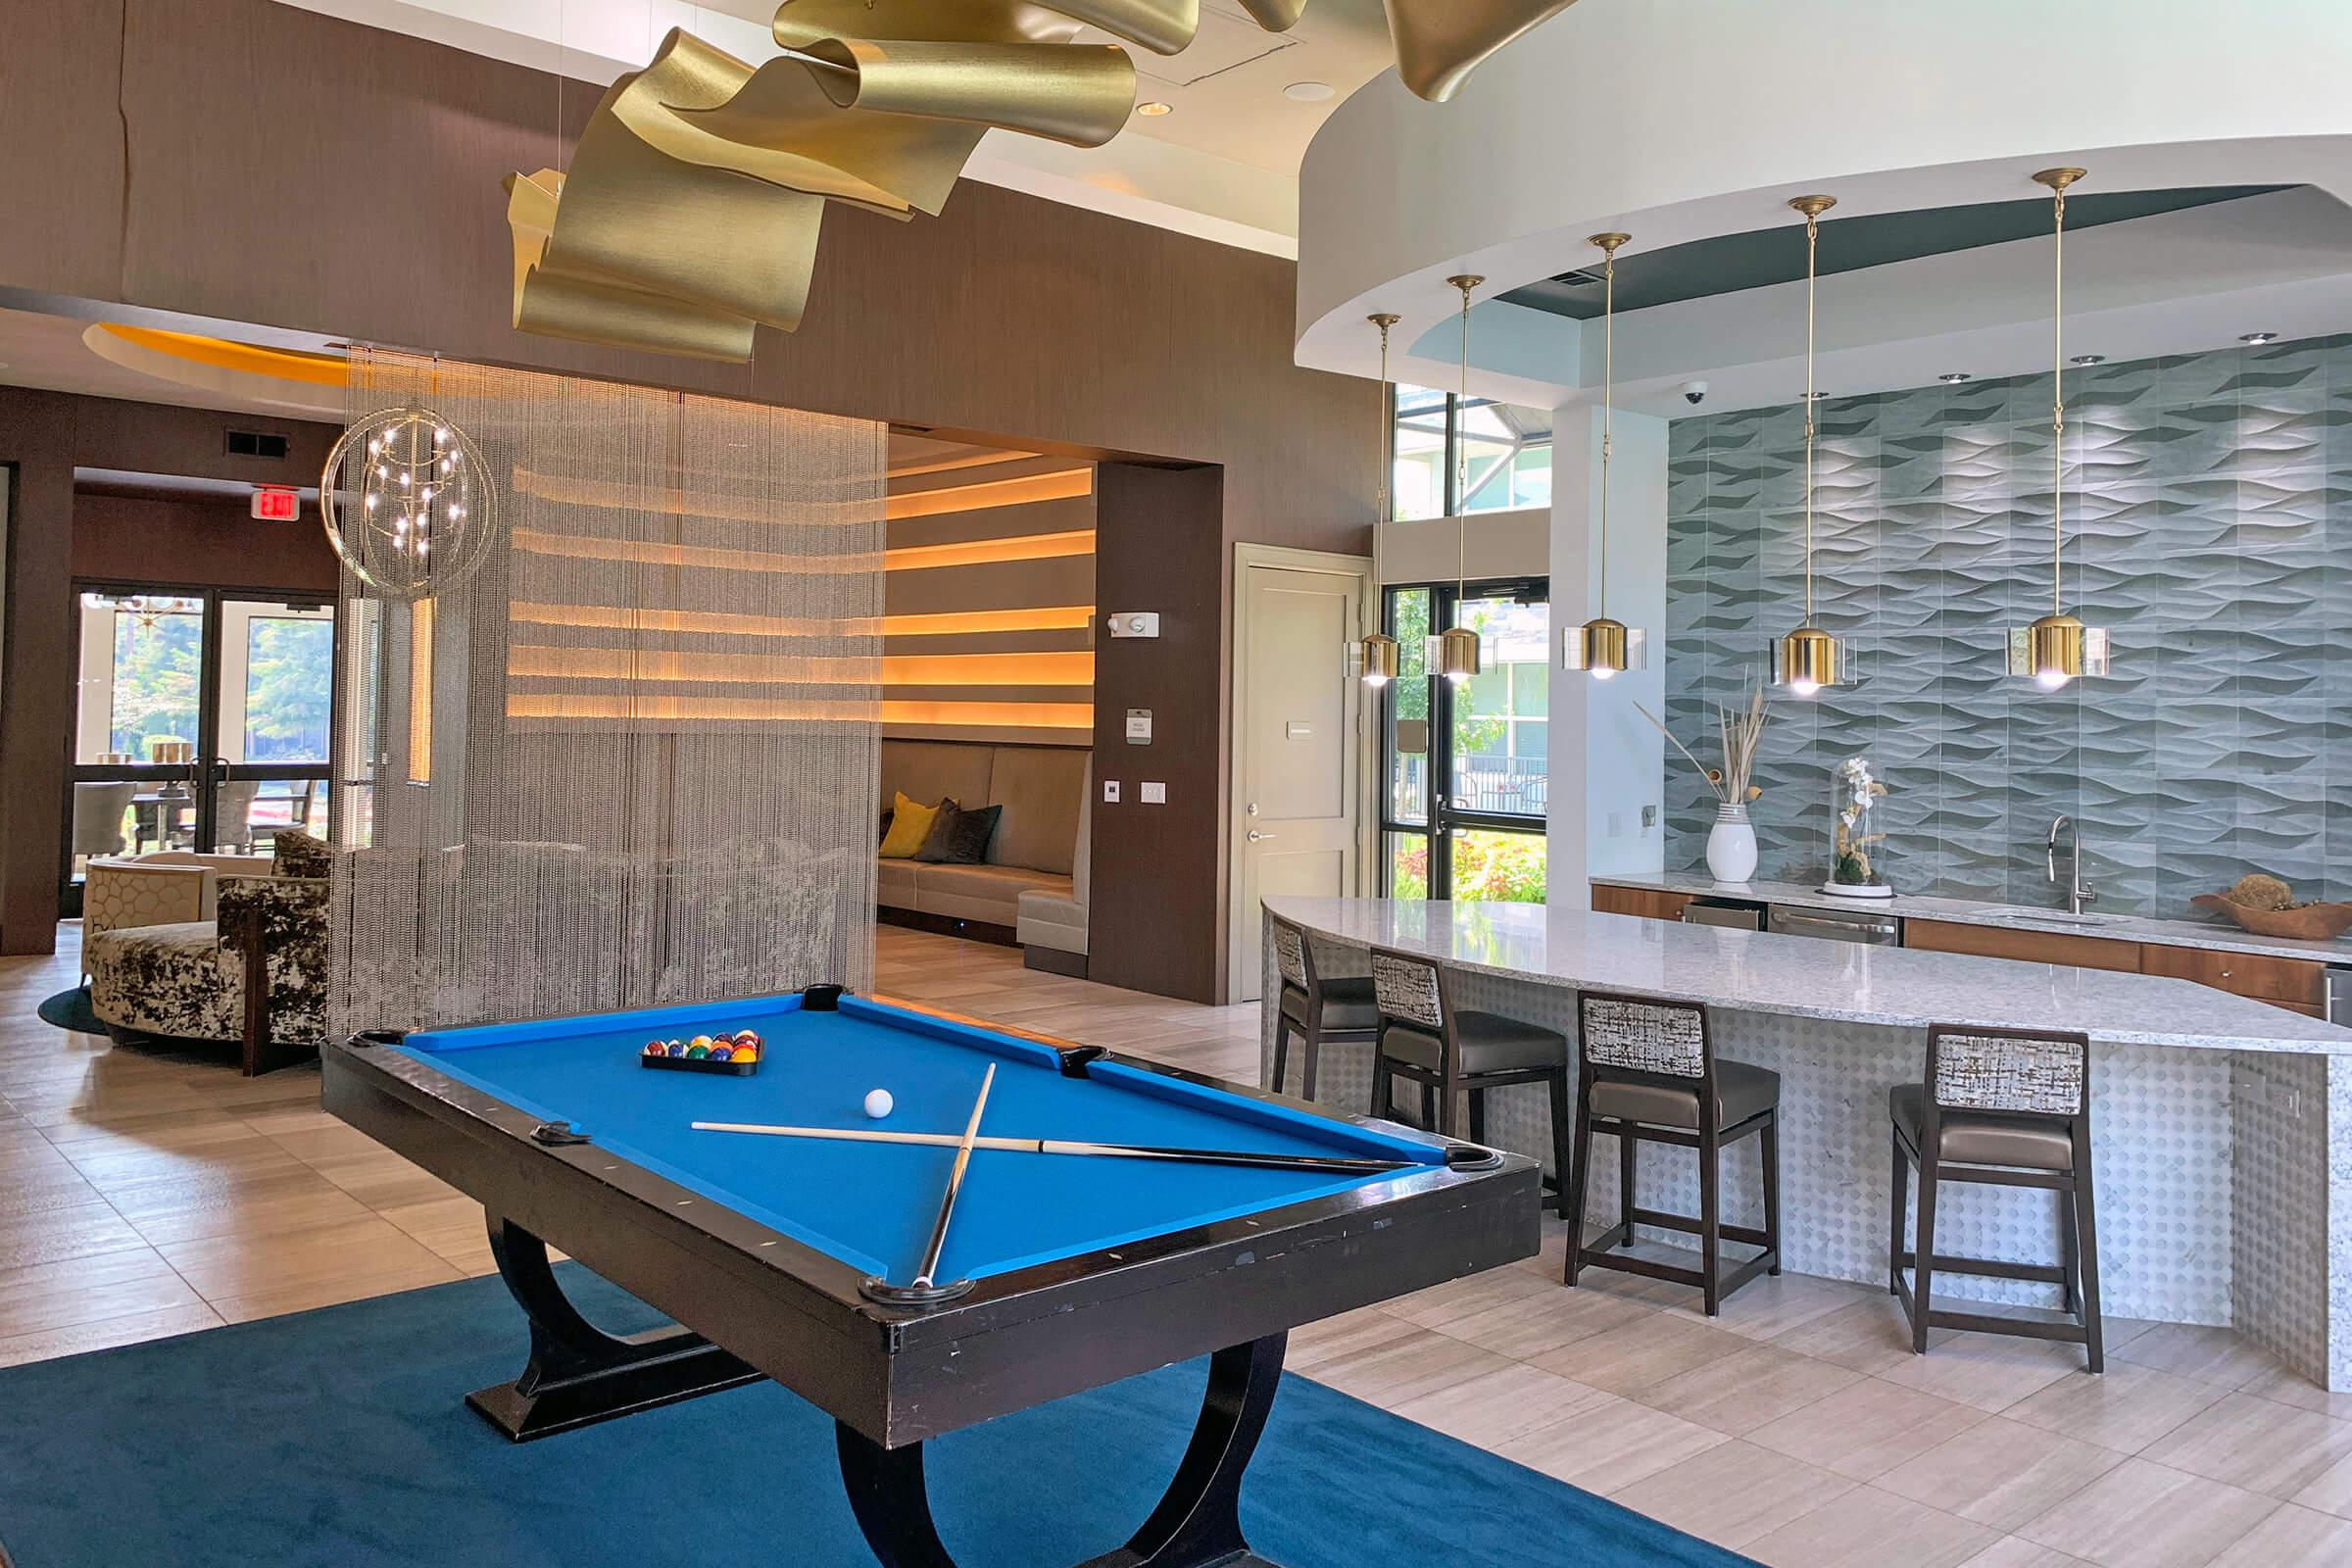 a room with a pool table